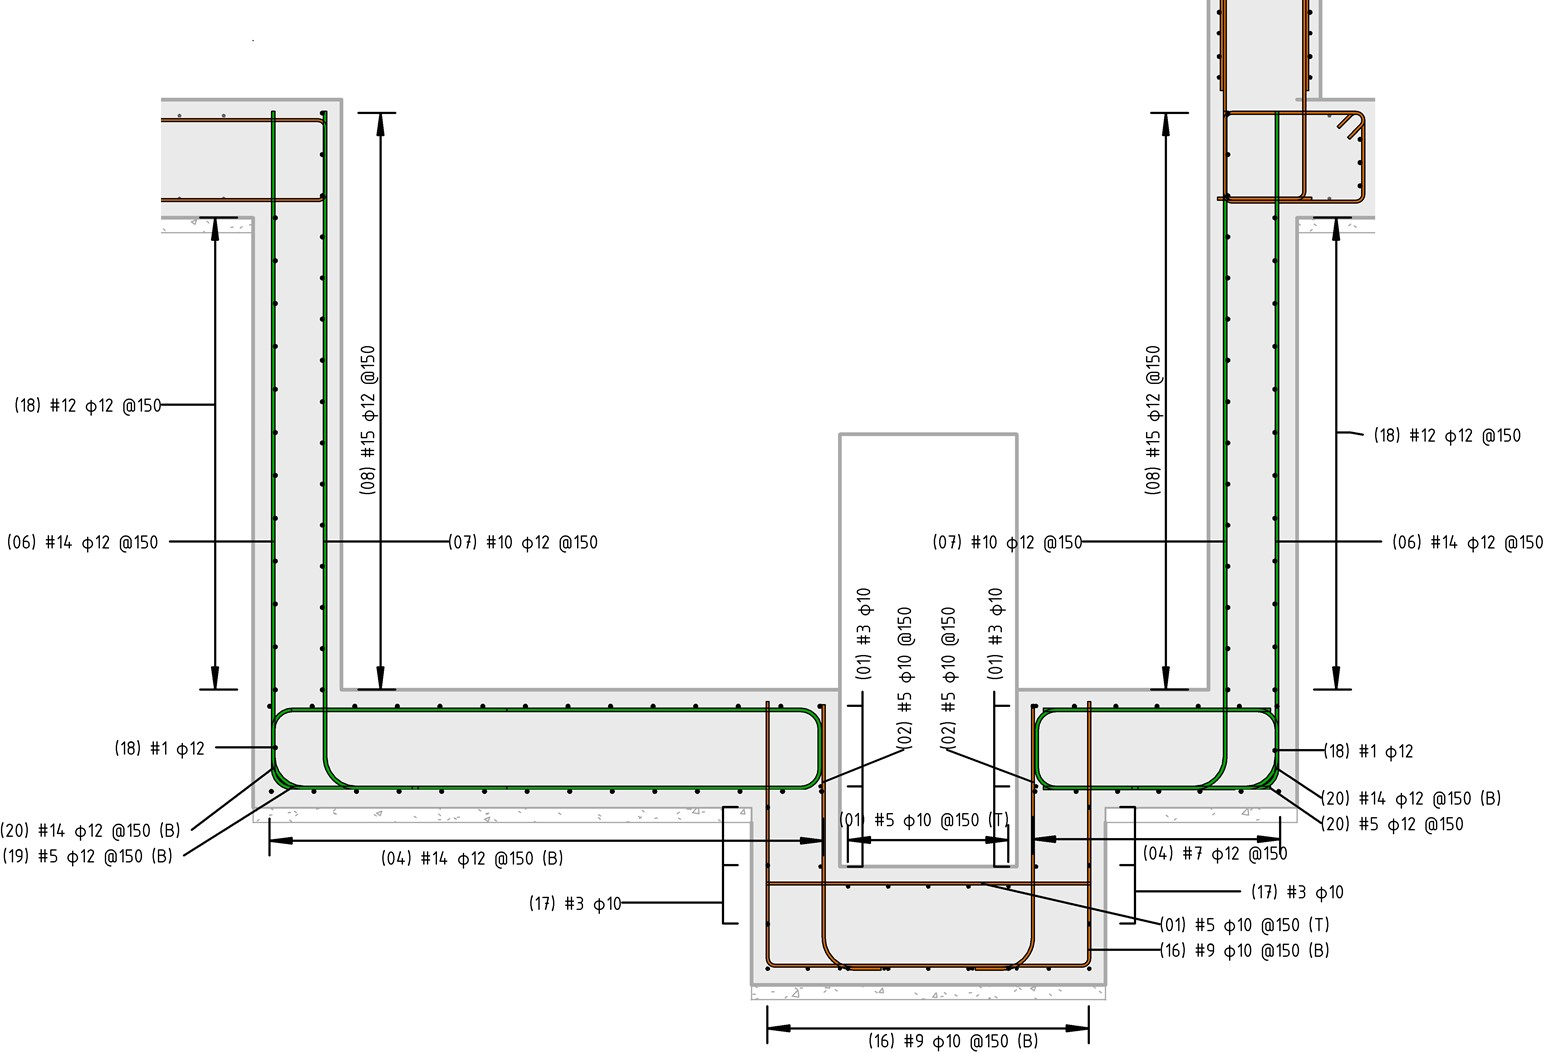 Concrete Reinforcing Steel Detailing : Rebar detailing in revit use case by vk engineers bim